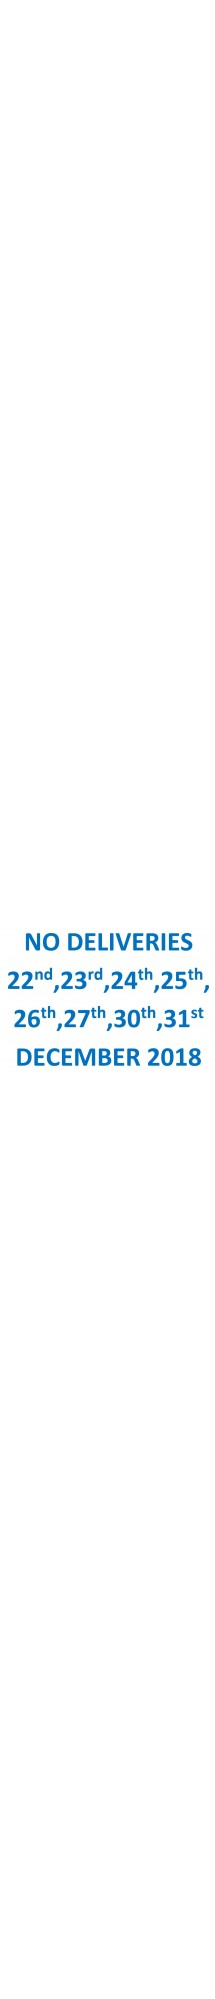 No Deliveries 2018